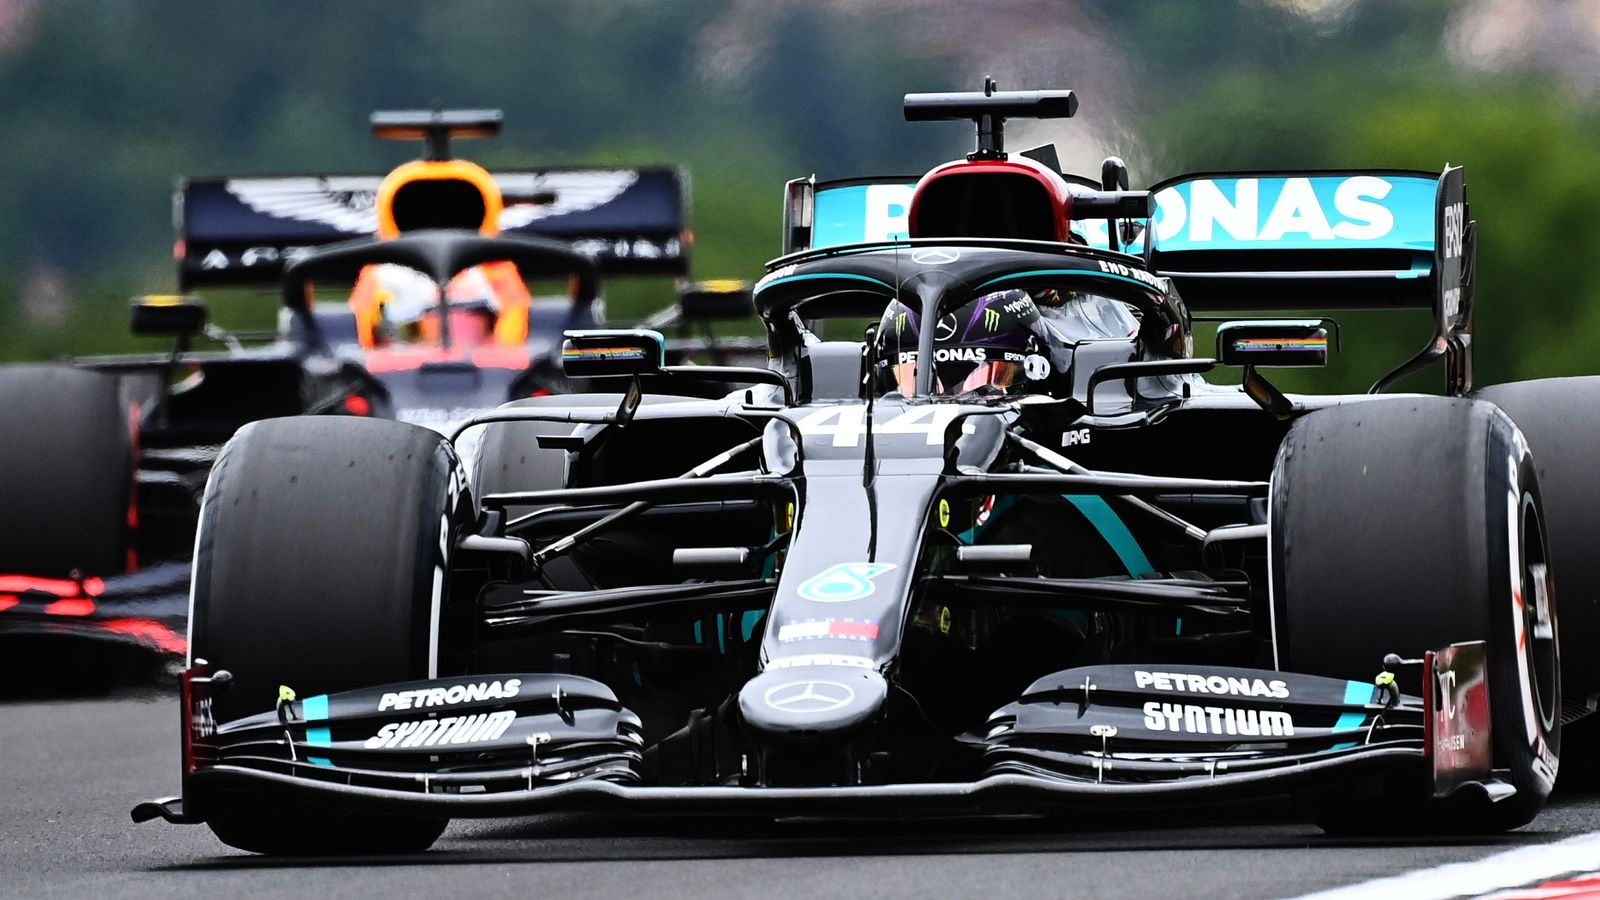 Lewis Hamilton had a positive first practice session, but is expecting Saturday's qualifying session to be much closer